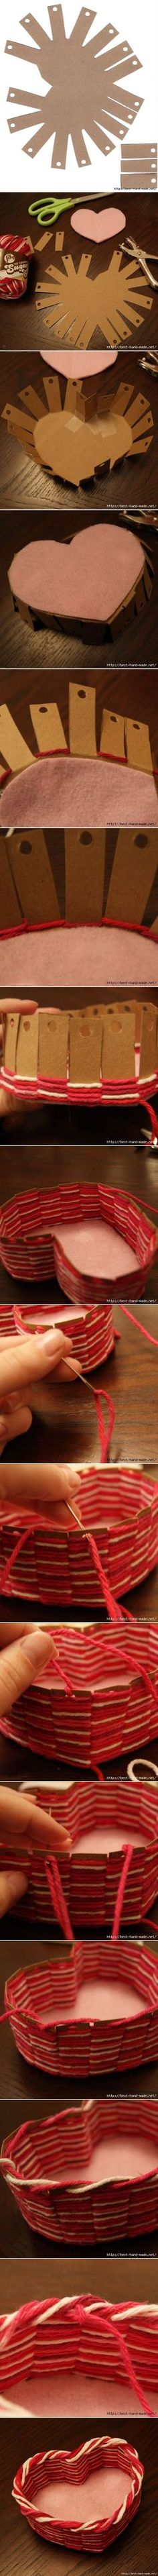 Yarn heart basket tutorial: